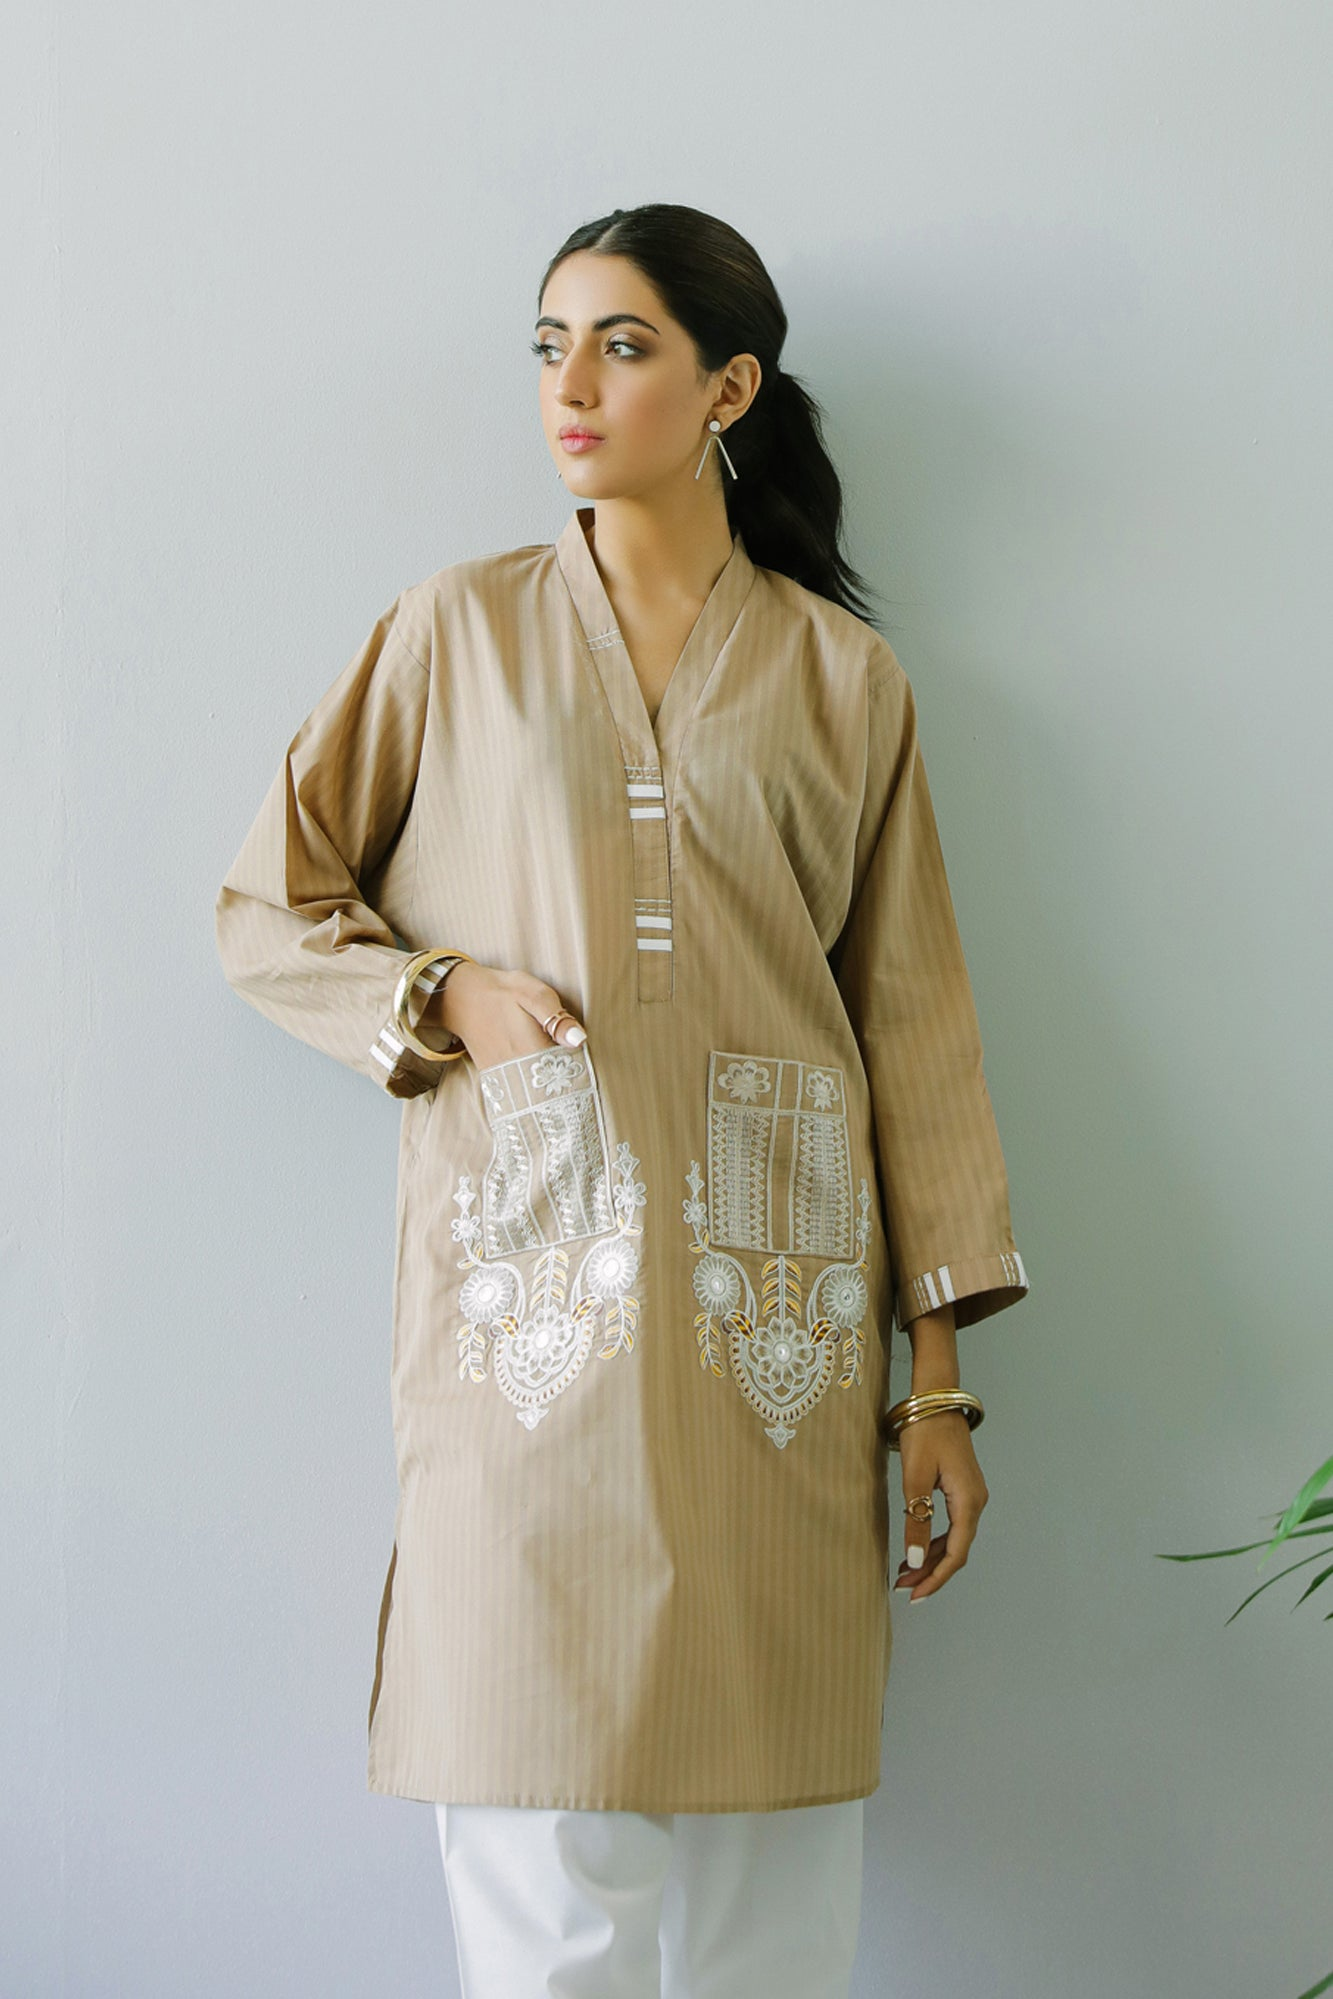 EMBROIDERED SHIRT (WTC211036) - Ethnic by Outfitters